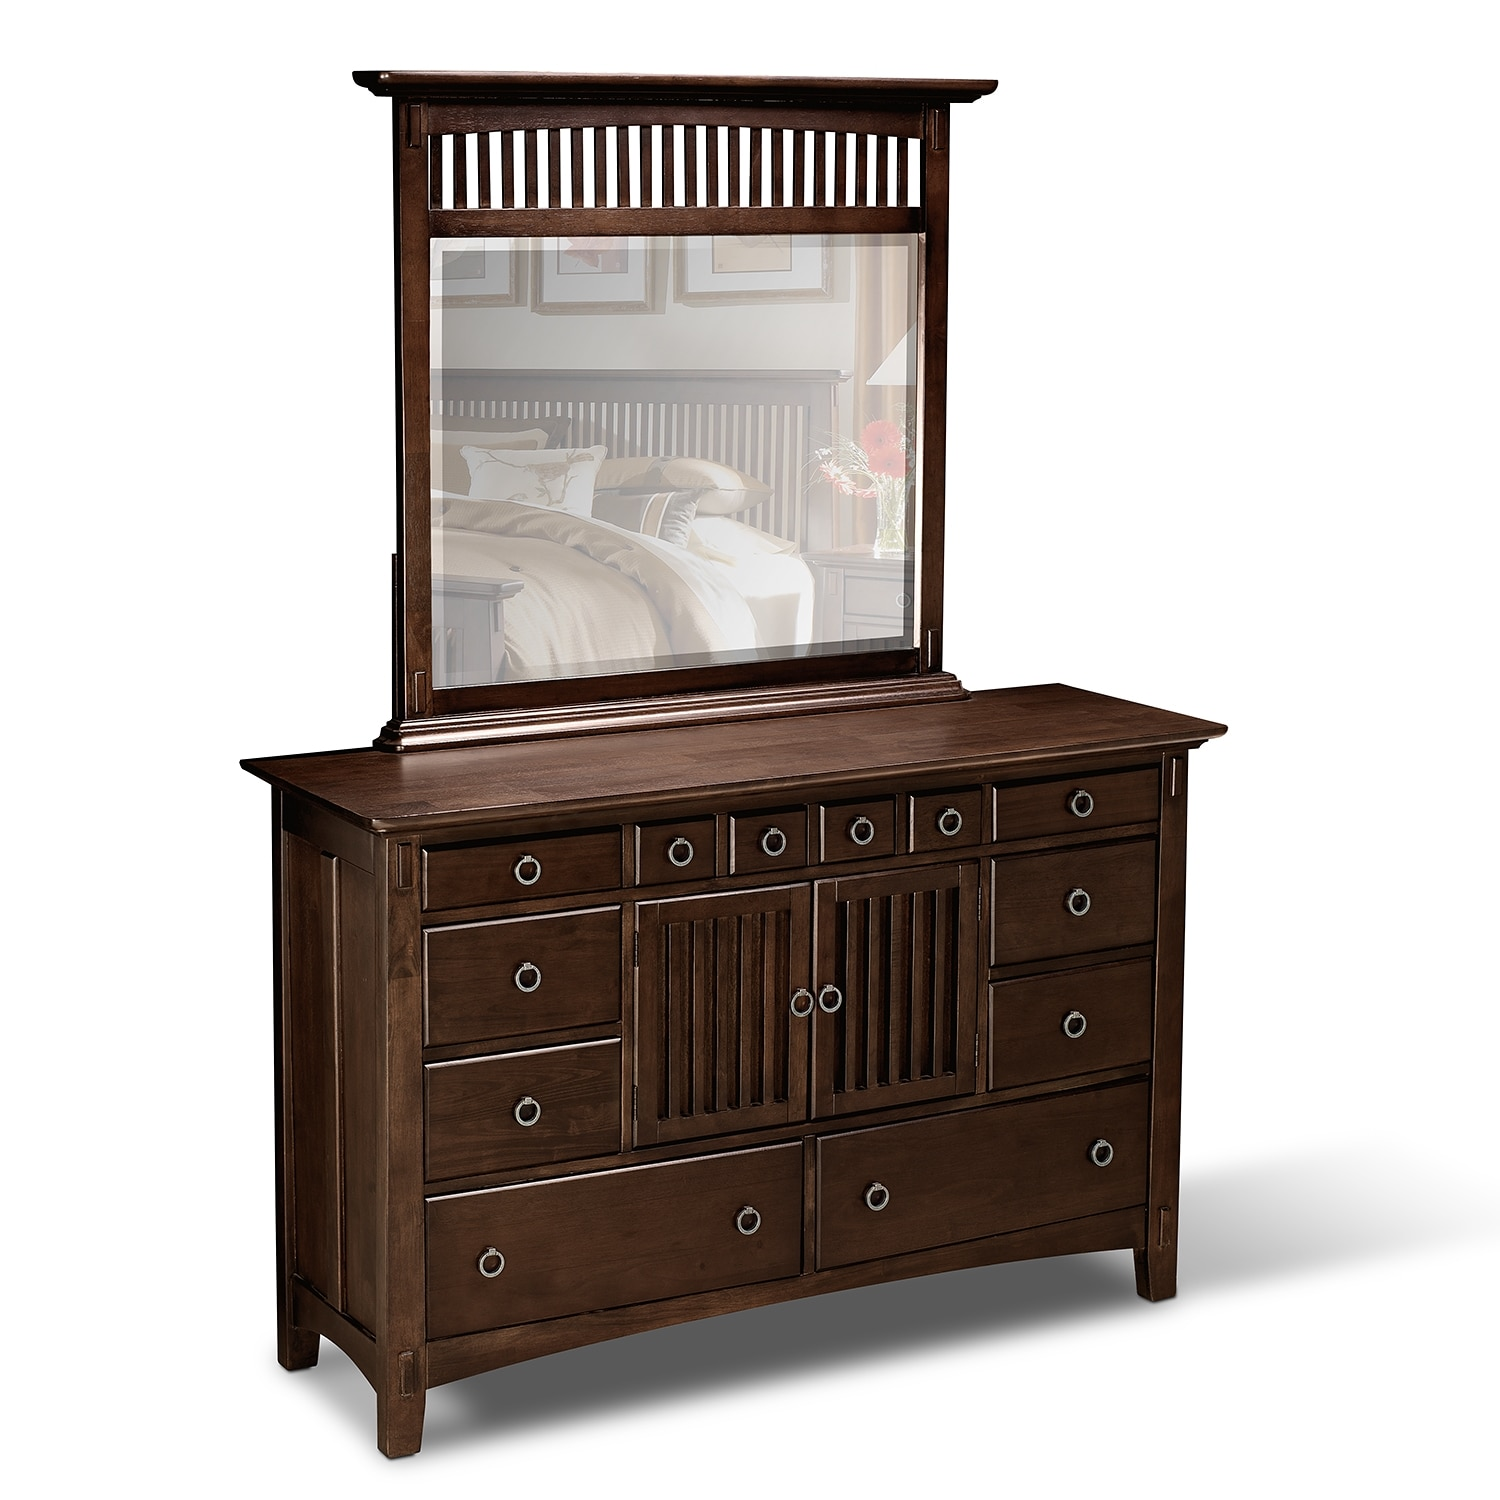 armoire for bedroom for the home pinterest bedroom